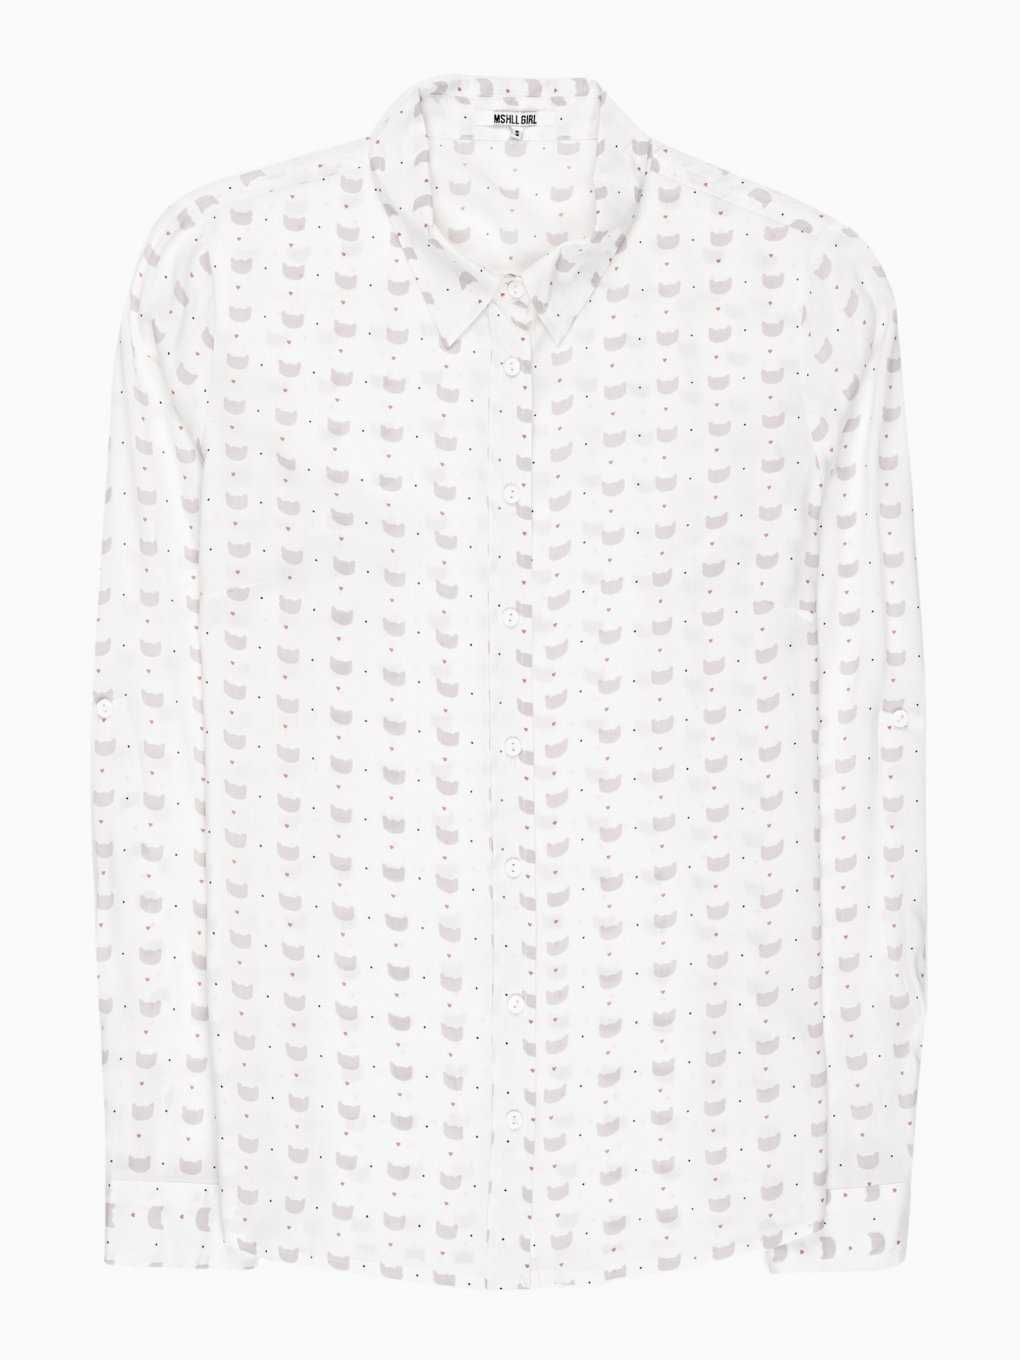 Kitty & hearts print viscose shirt